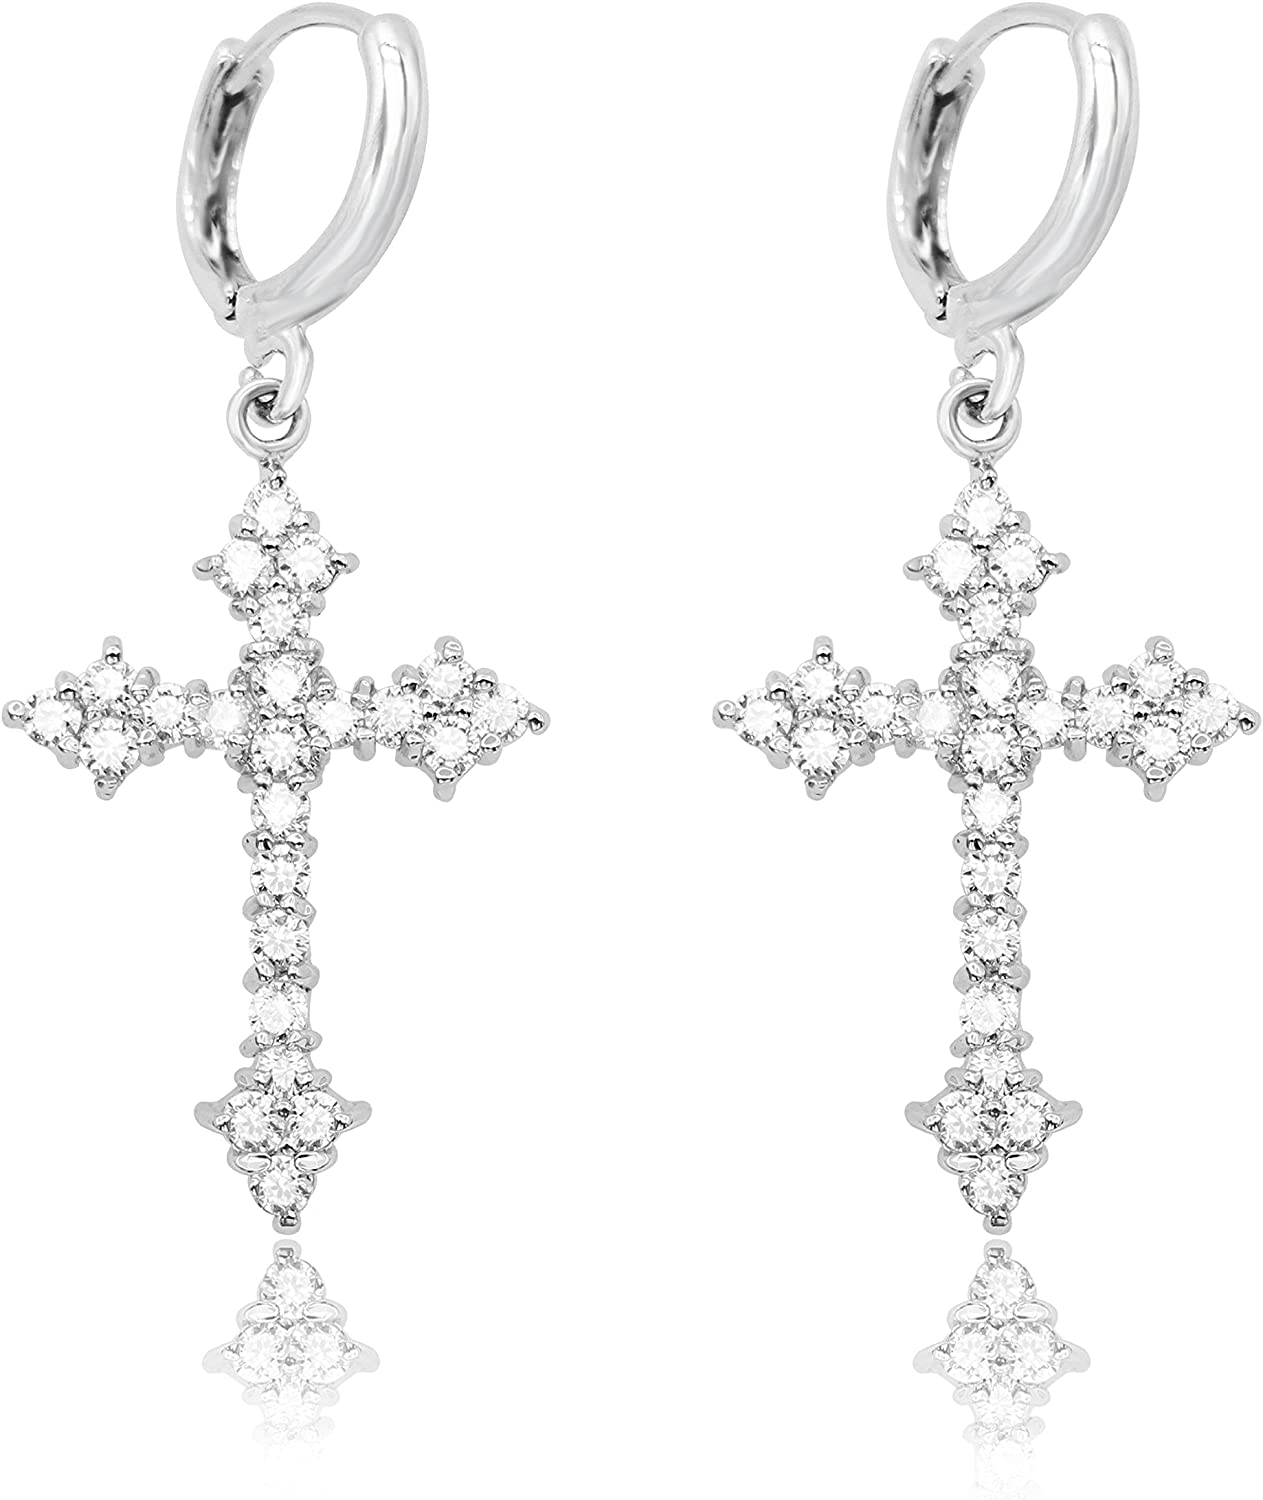 Women Lovely Silver Plated Earring Sliver Plated Long Drop Earrings Fashion CG